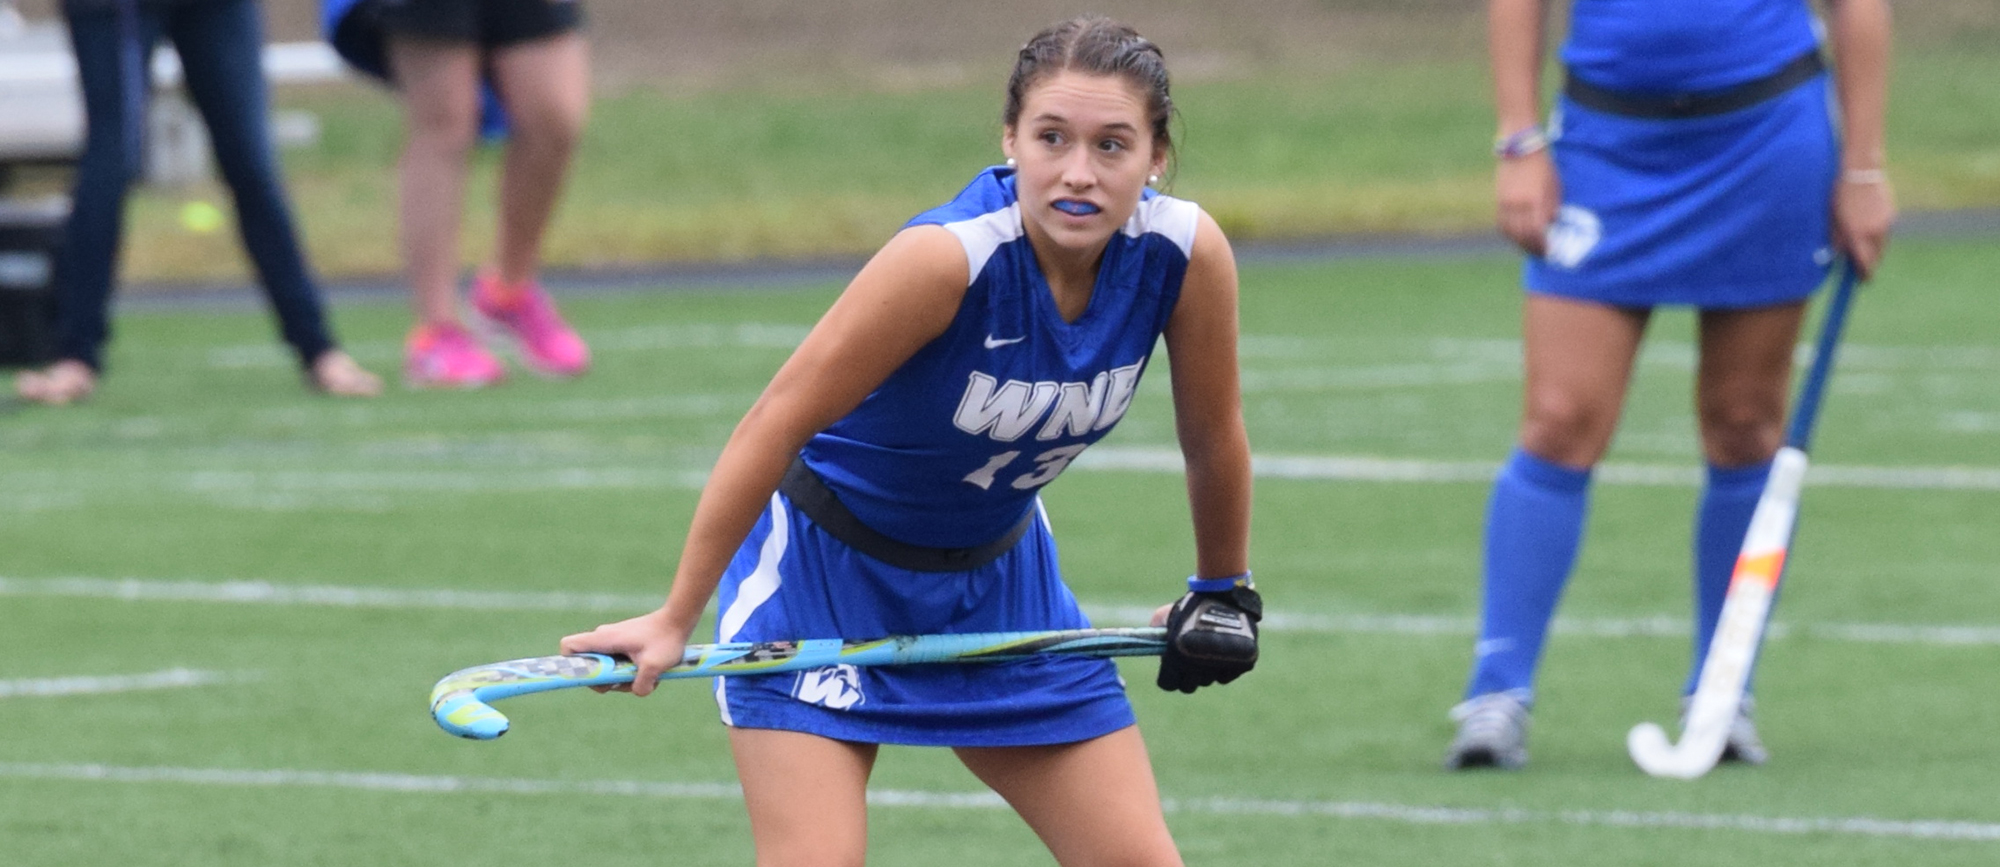 Sophomore Jacqueline Clark scored two goals in Western New England's 3-0 win over Clark on Saturday.